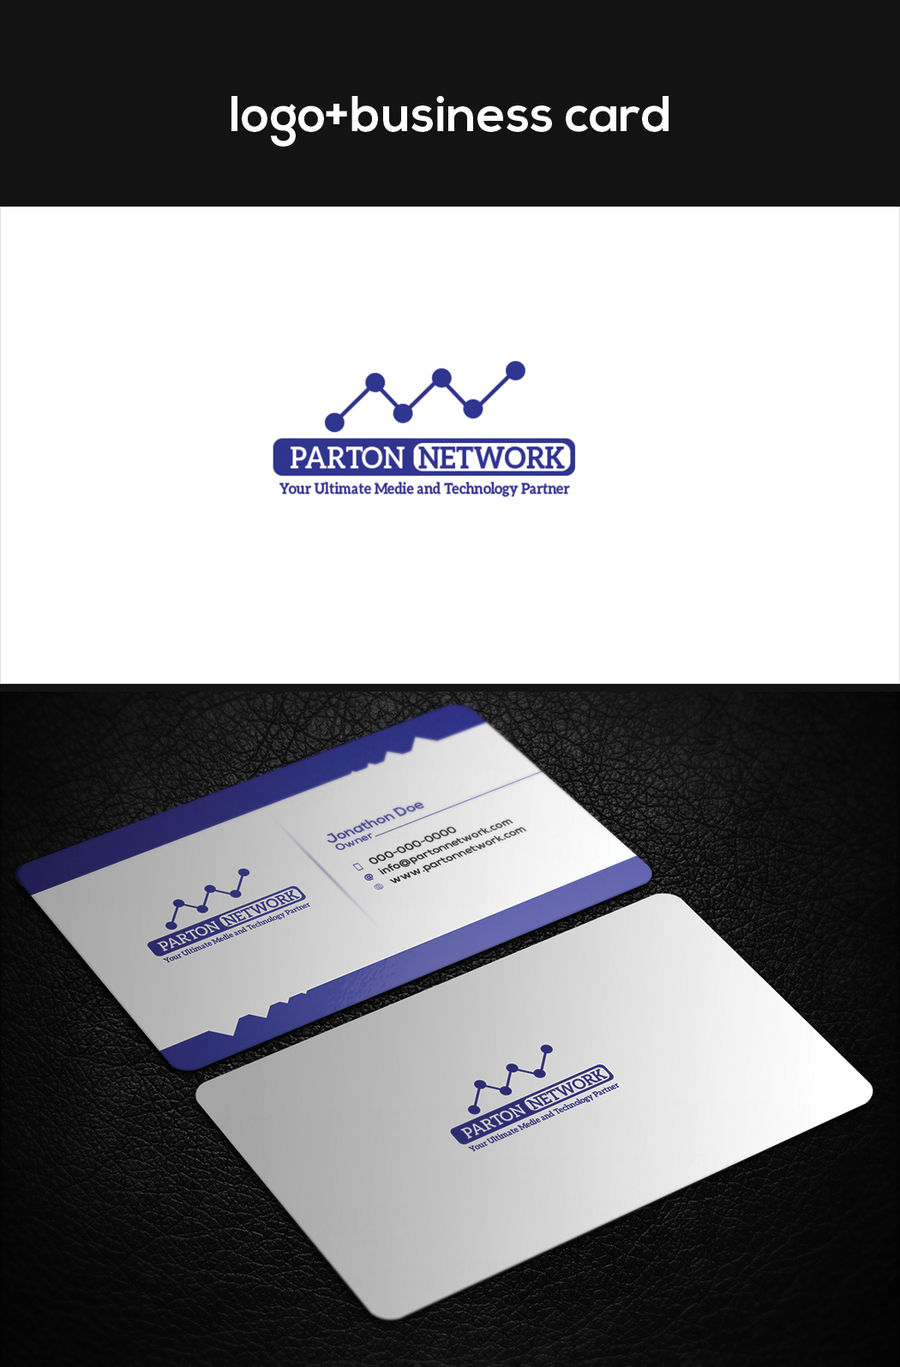 Business Card Pdf Gallery - Free Business Cards